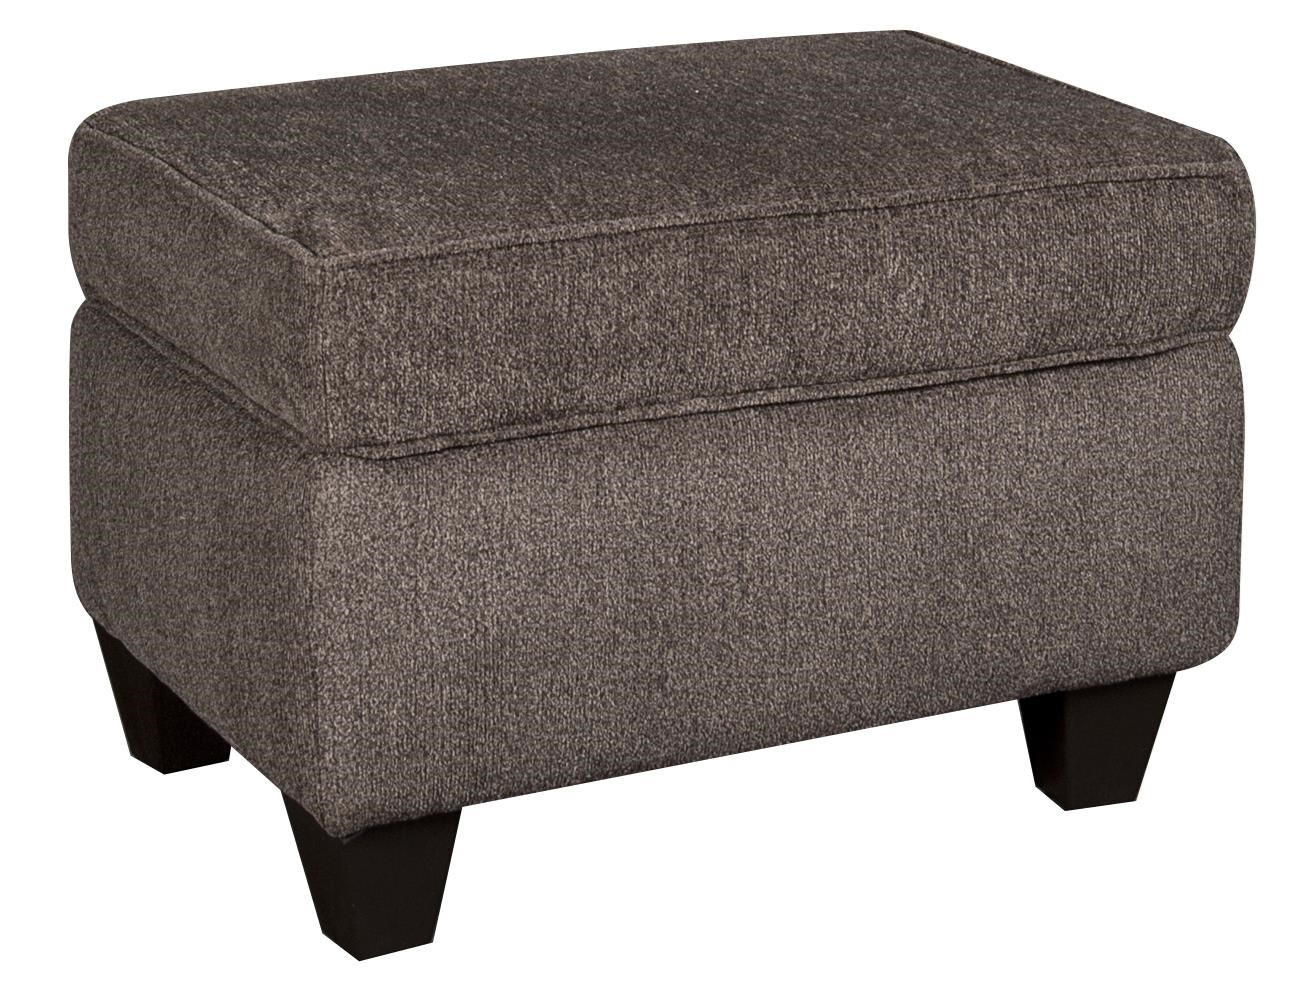 Wilson Wilson Ottoman by Peak Living at Morris Home